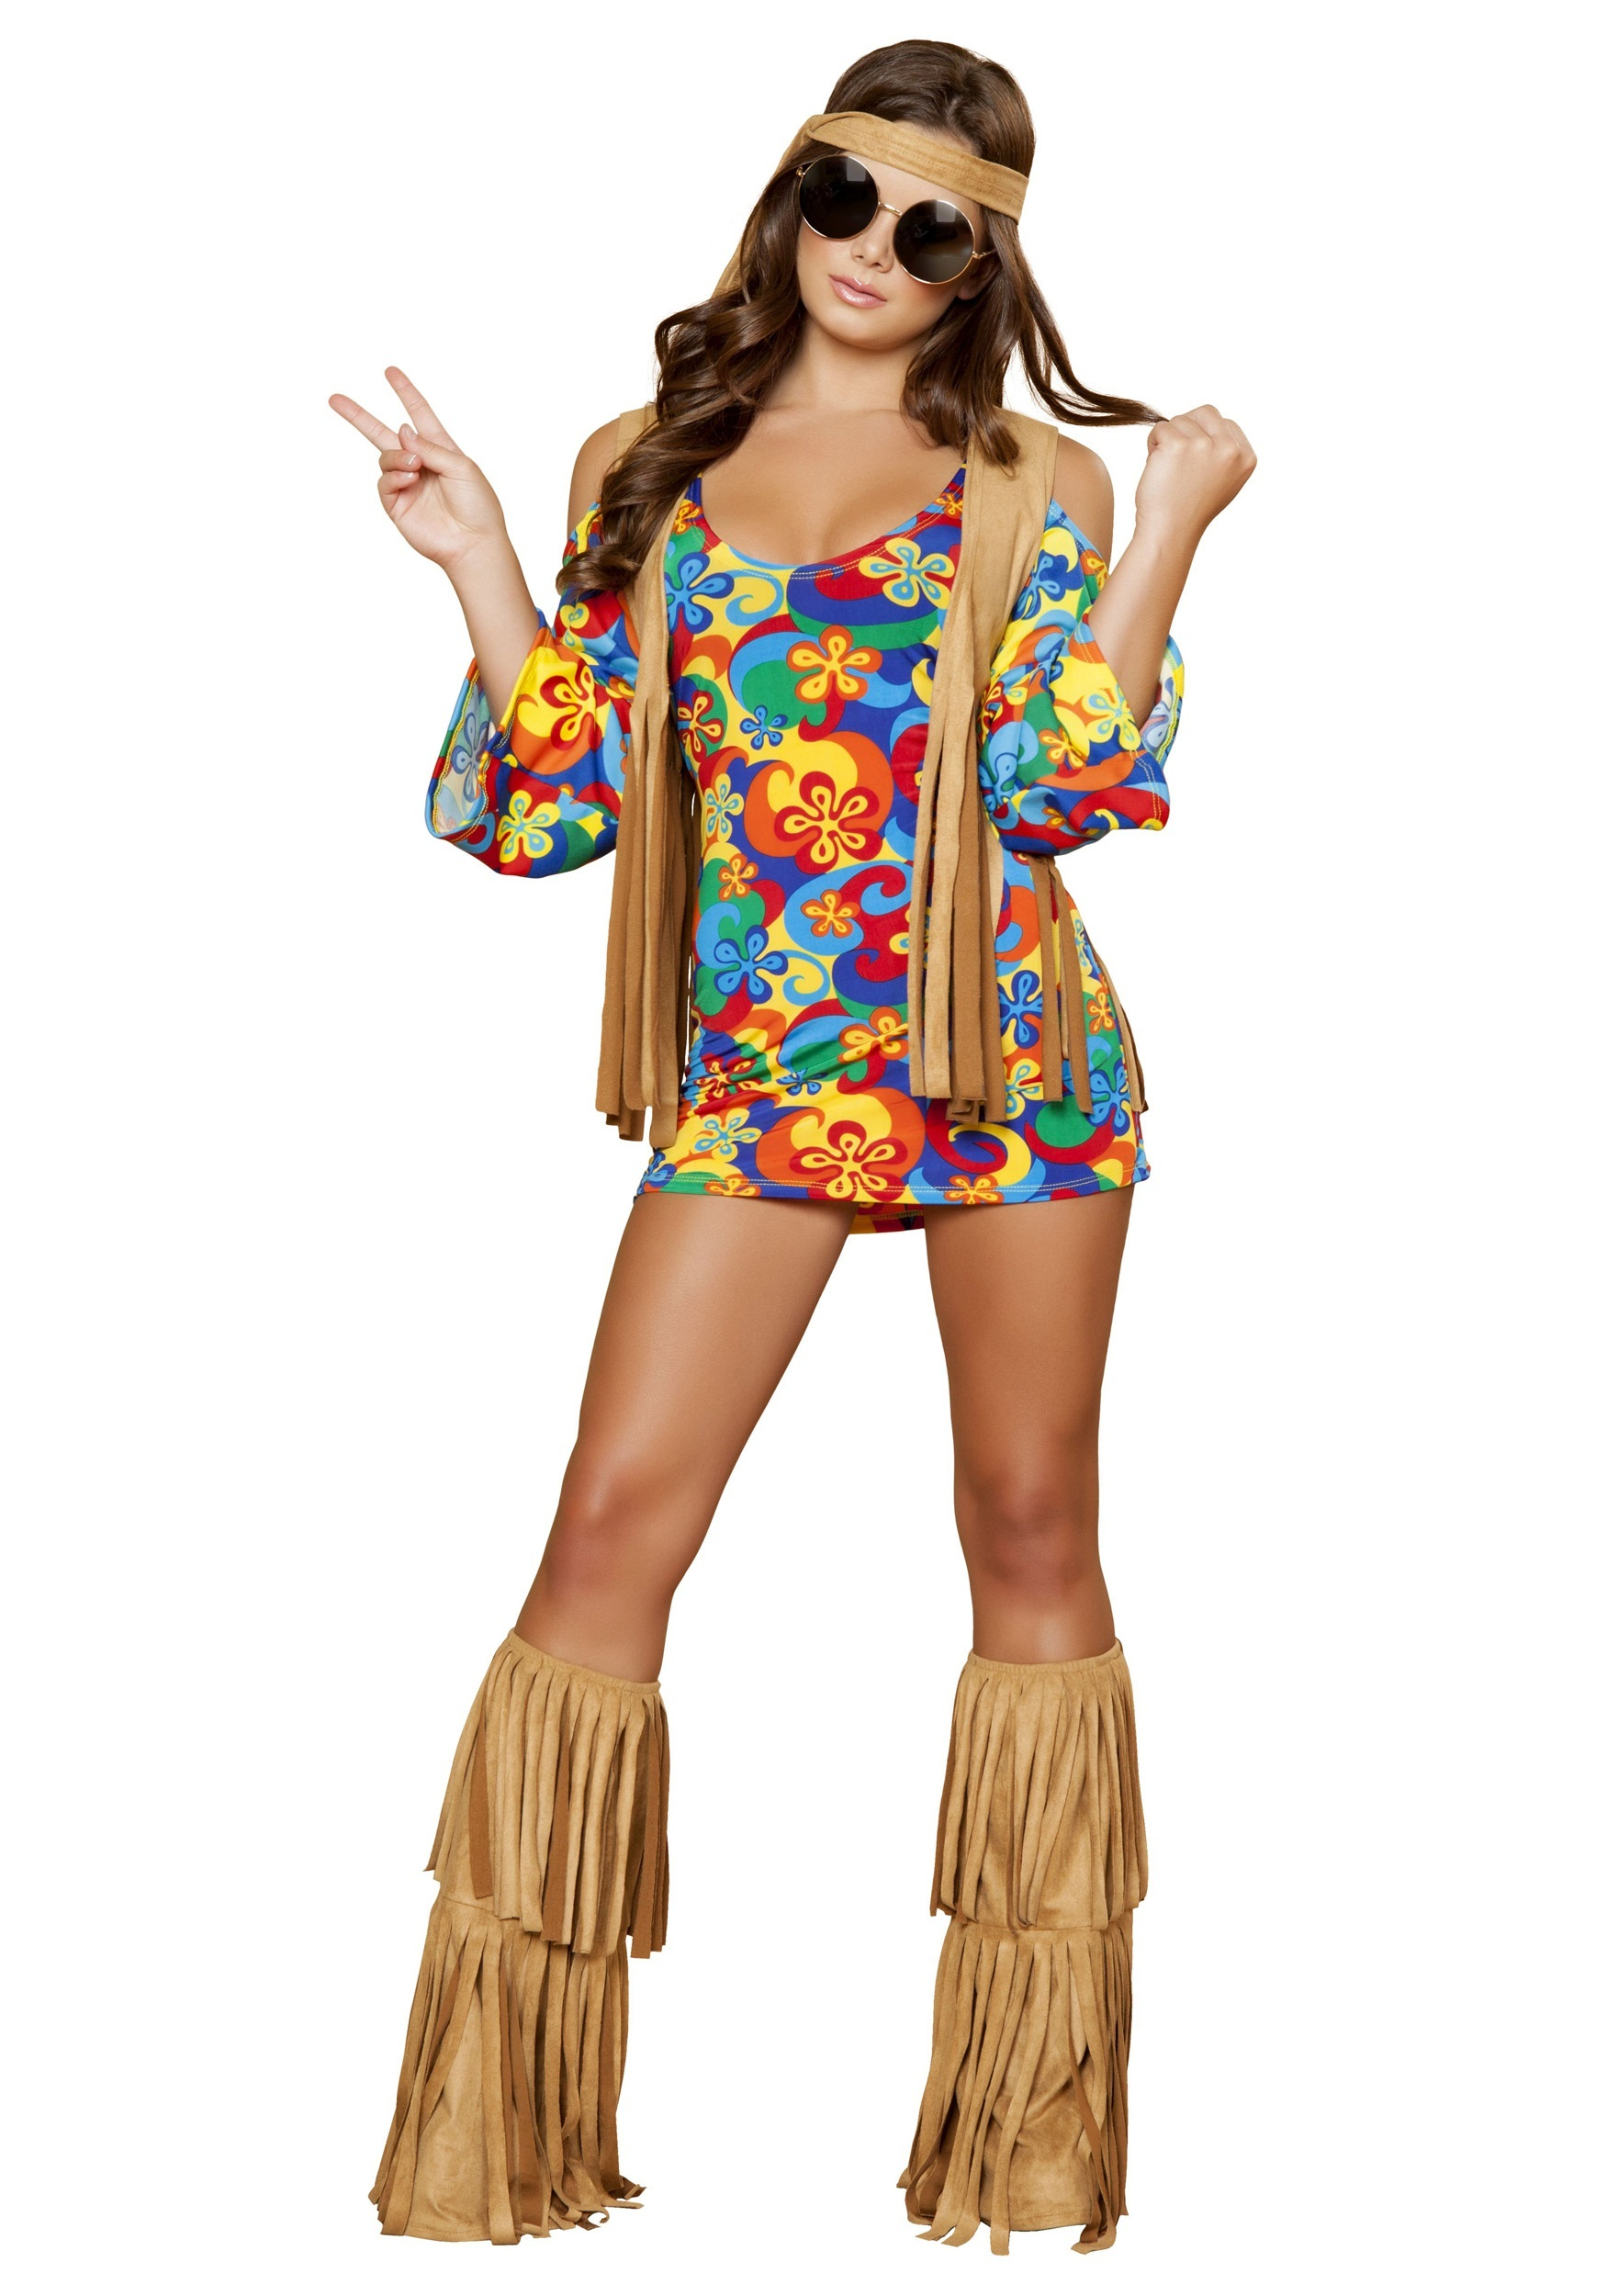 Plus Size Women's Hippie Hottie Costume